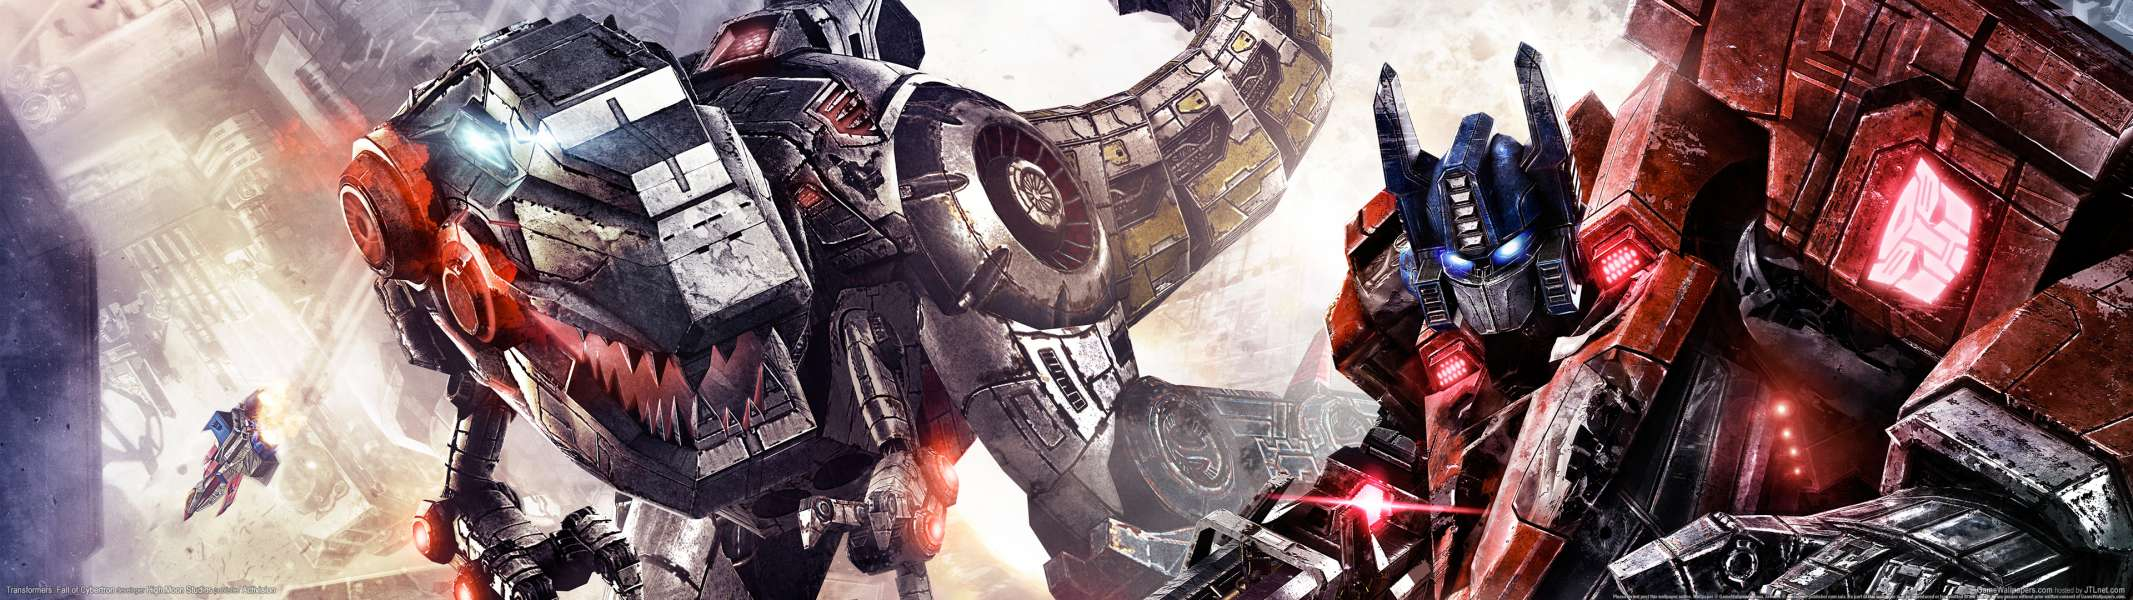 Transformers: Fall of Cybertron dual screen wallpaper or background